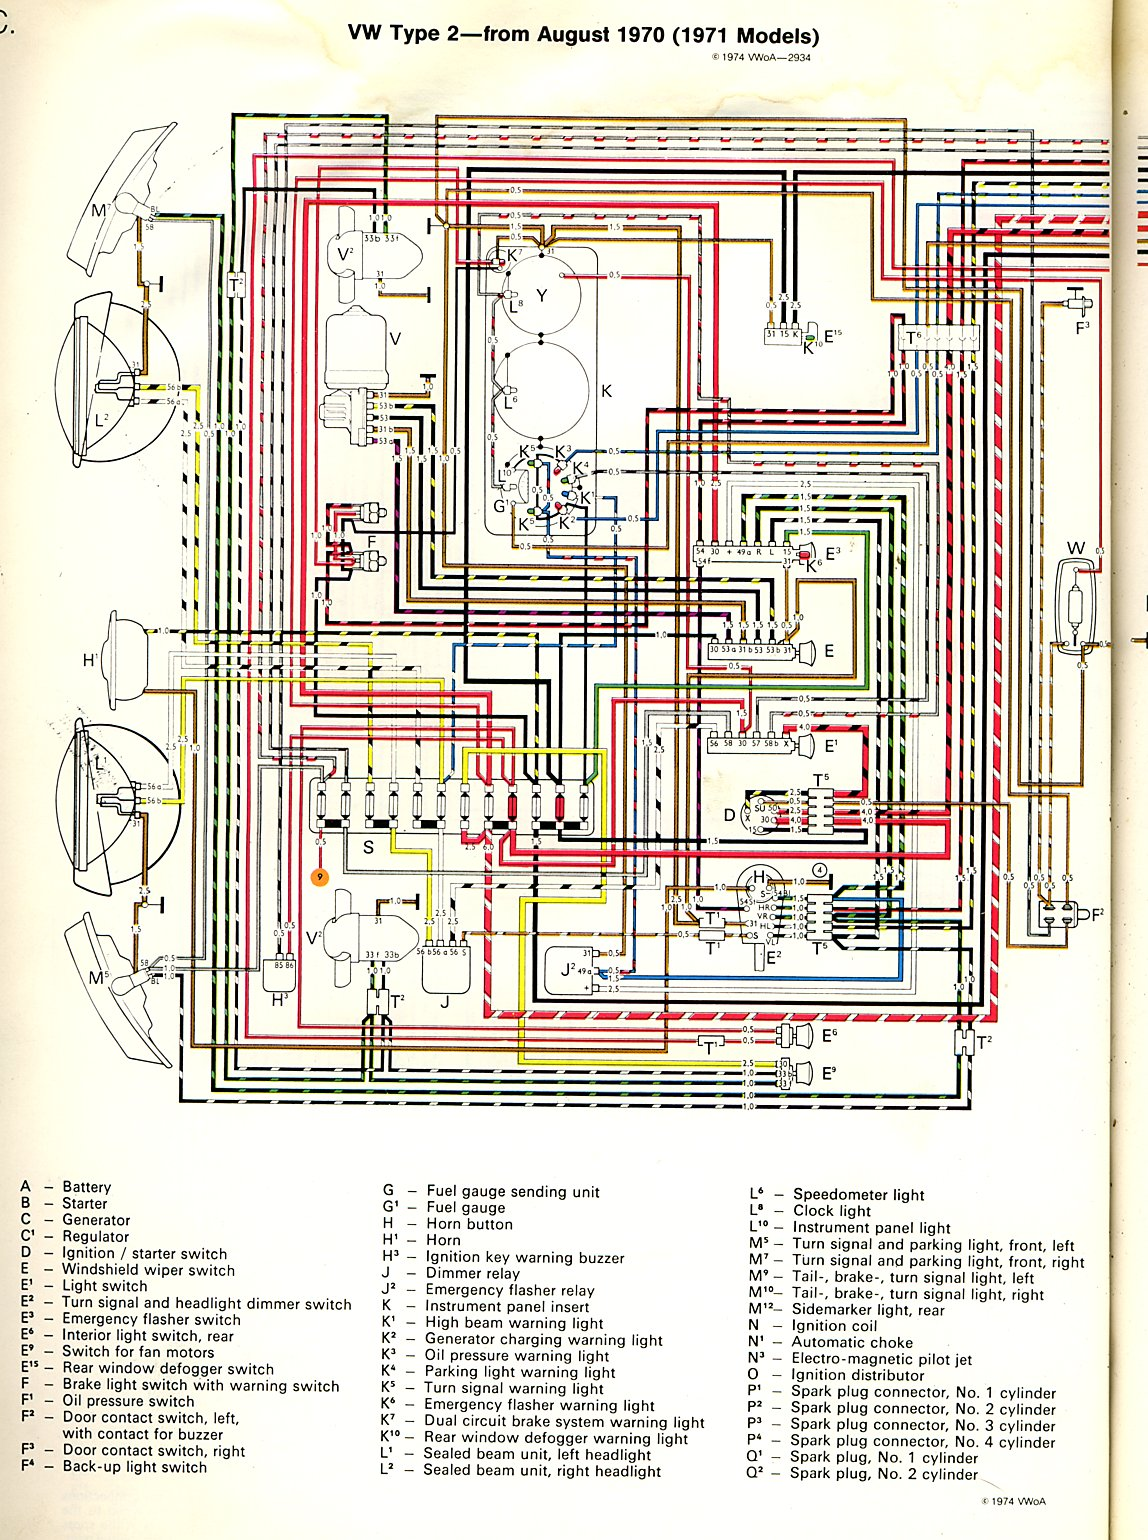 baybus_71a thesamba com type 2 wiring diagrams 1978 vw bus fuse box diagram at couponss.co